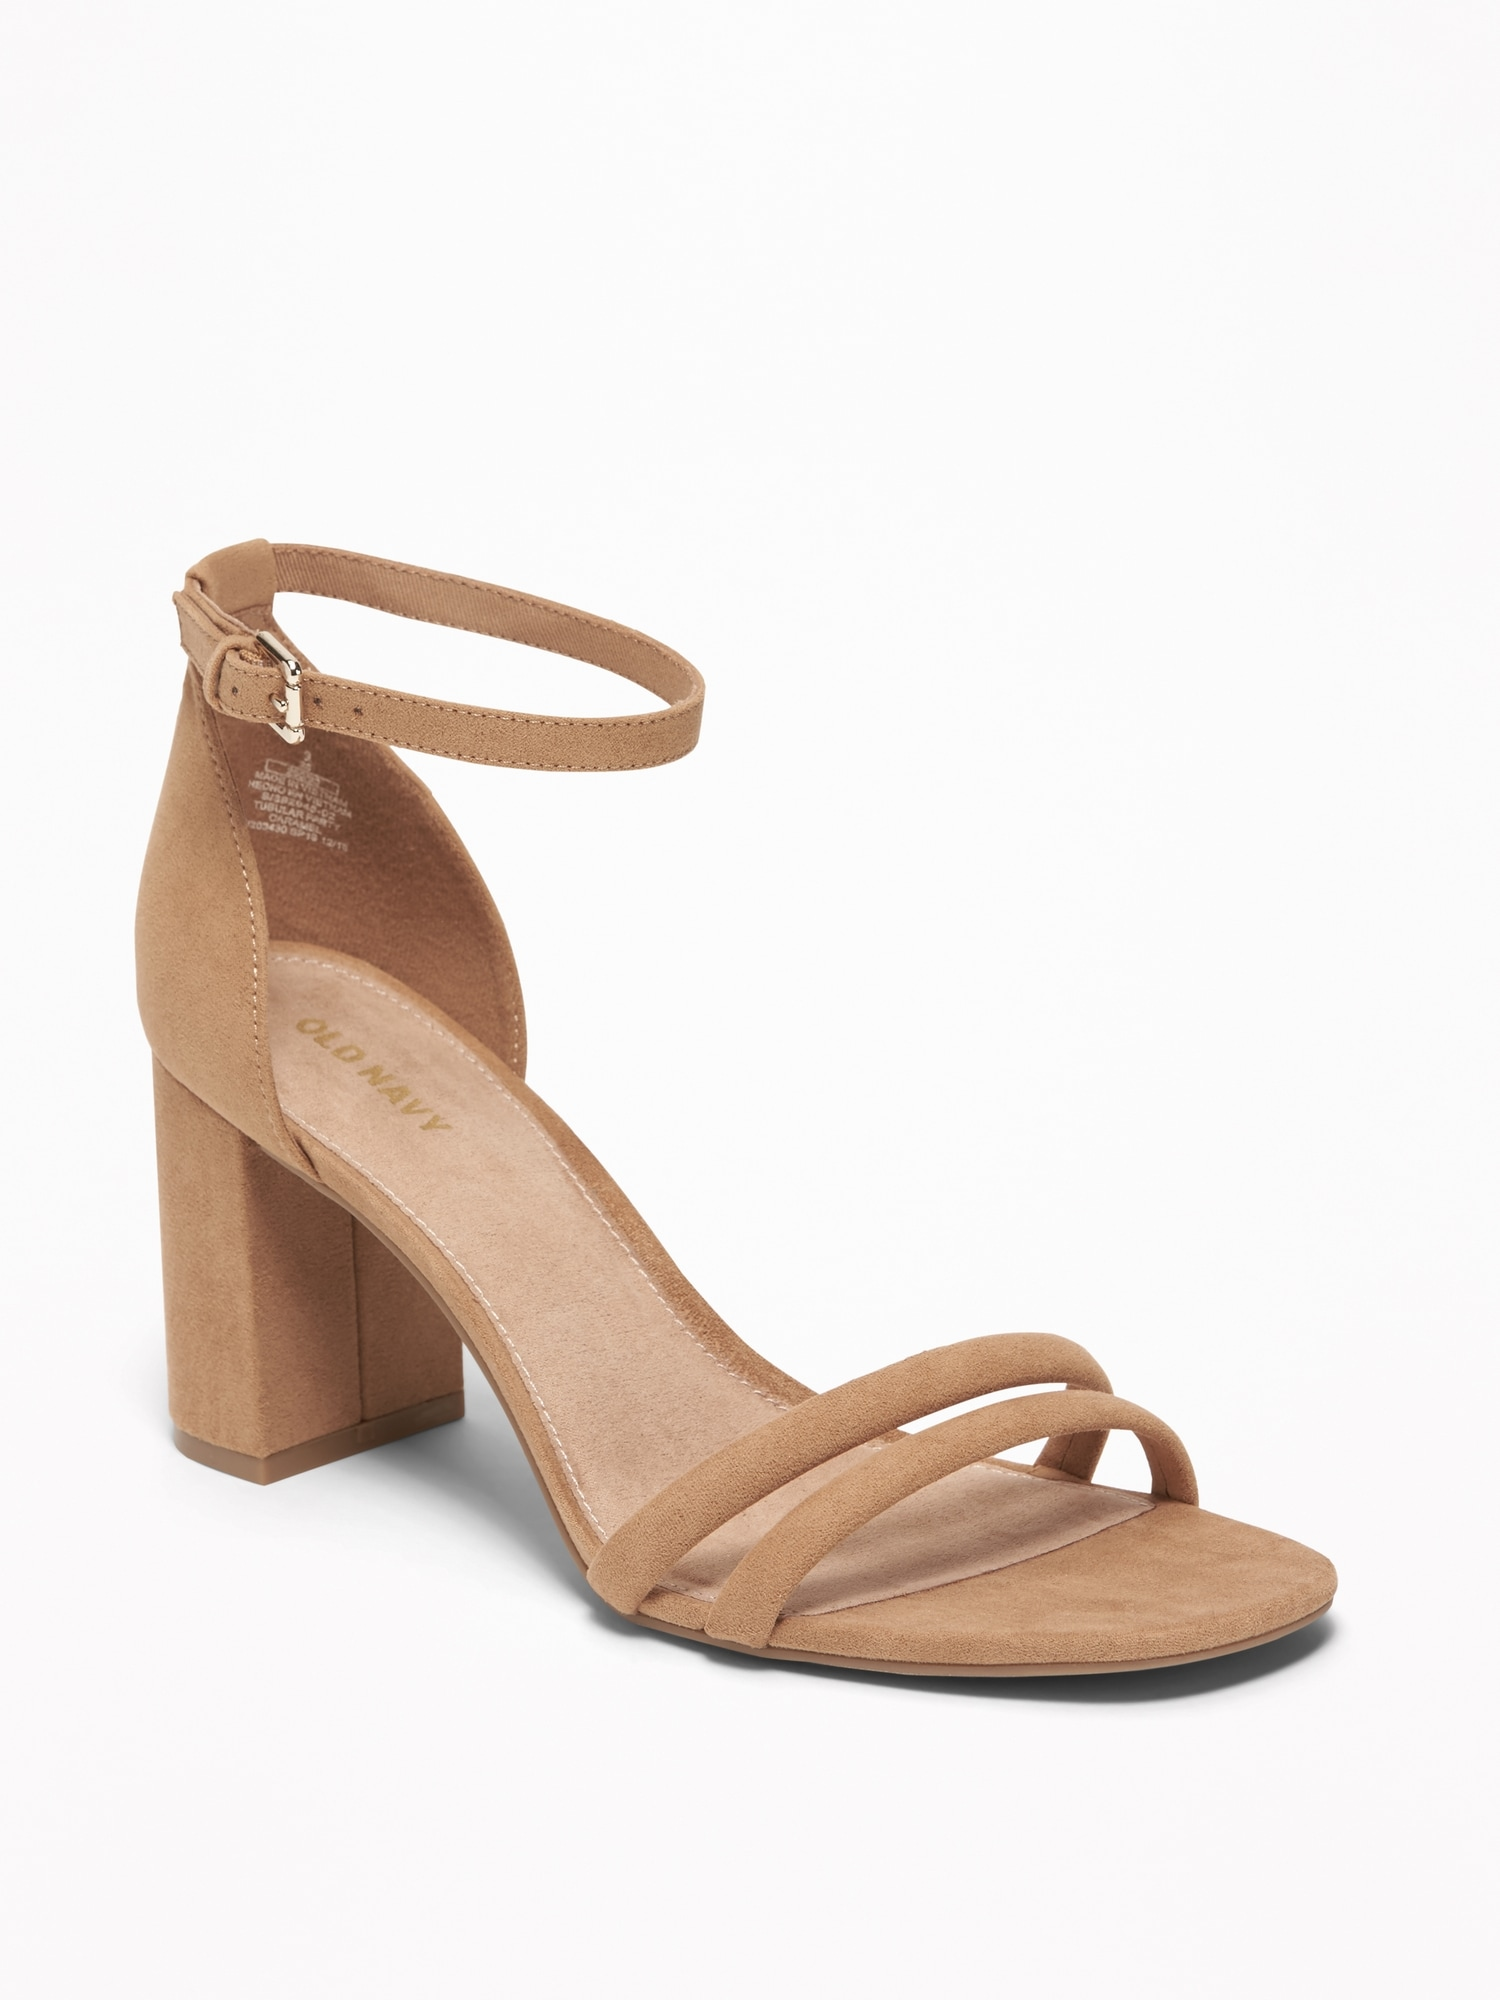 27bc9f3782f Strappy Block-Heel Sandals for Women